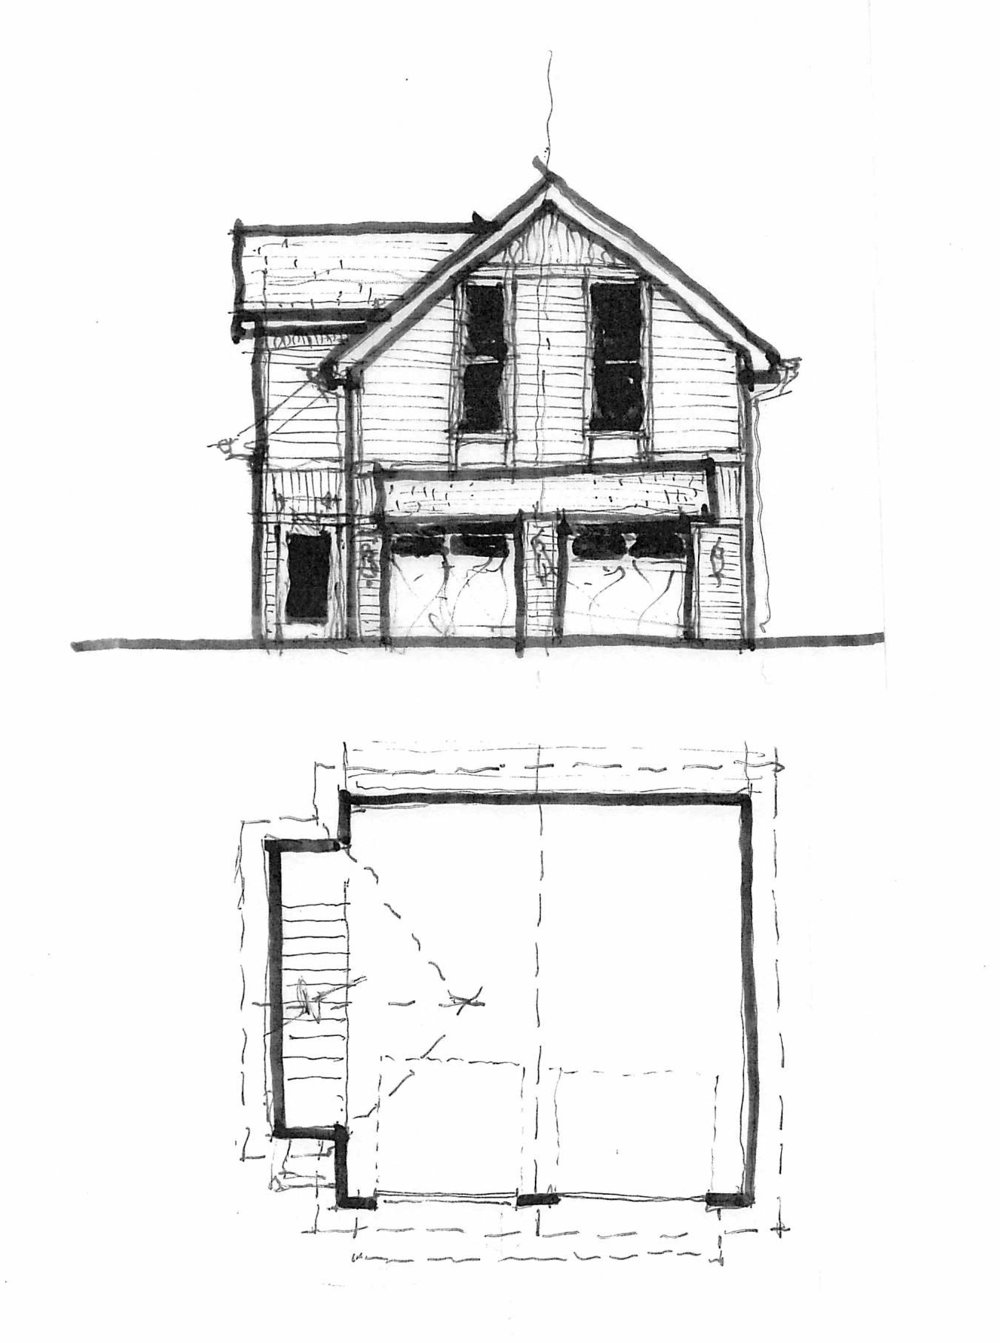 Proposed carriage house